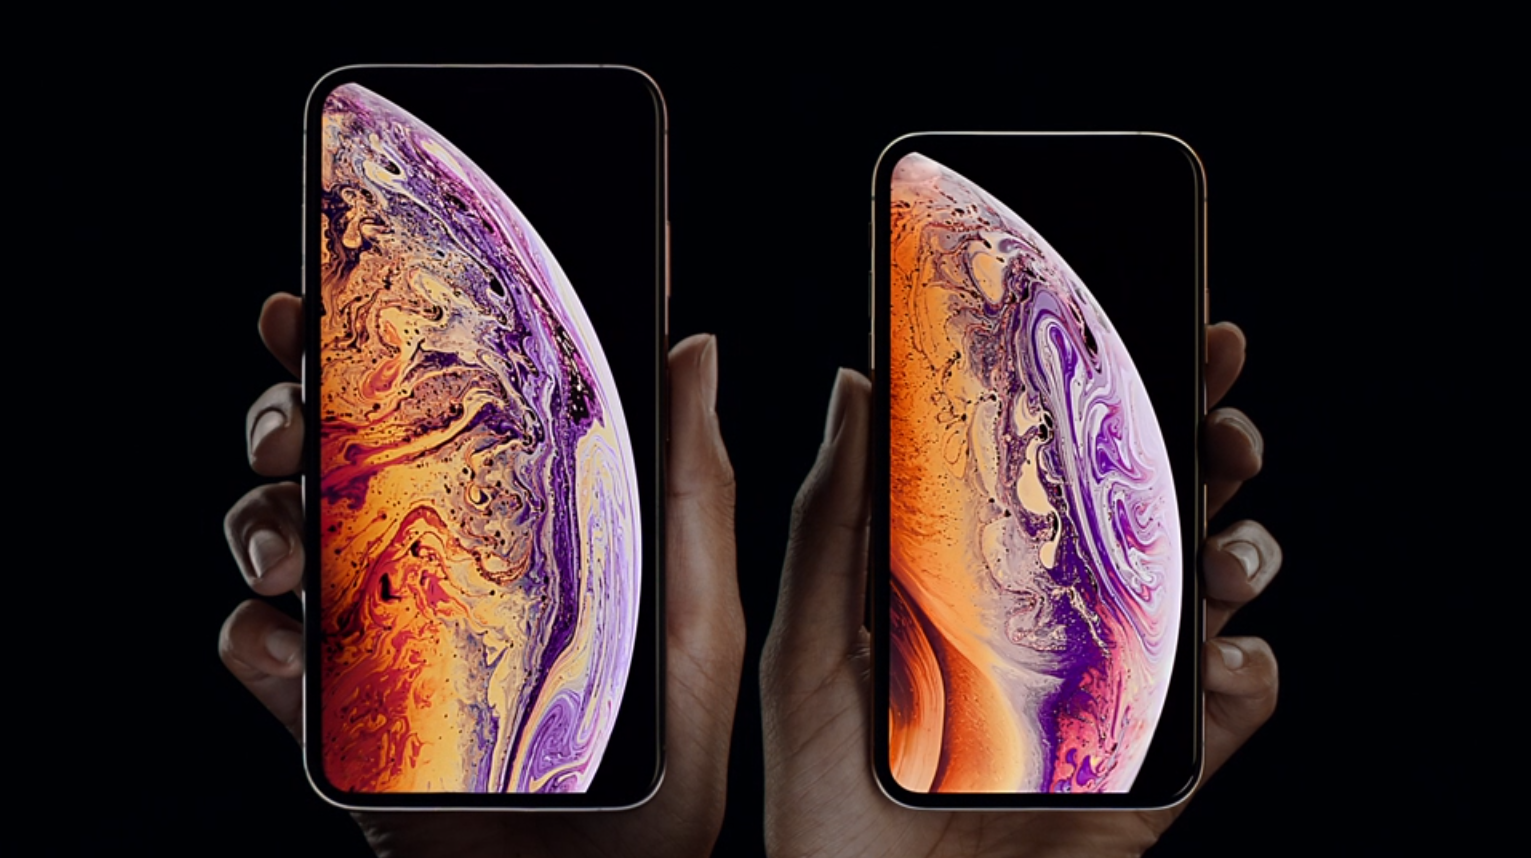 Apple's iPhone XS Adverts Are Very Misleading